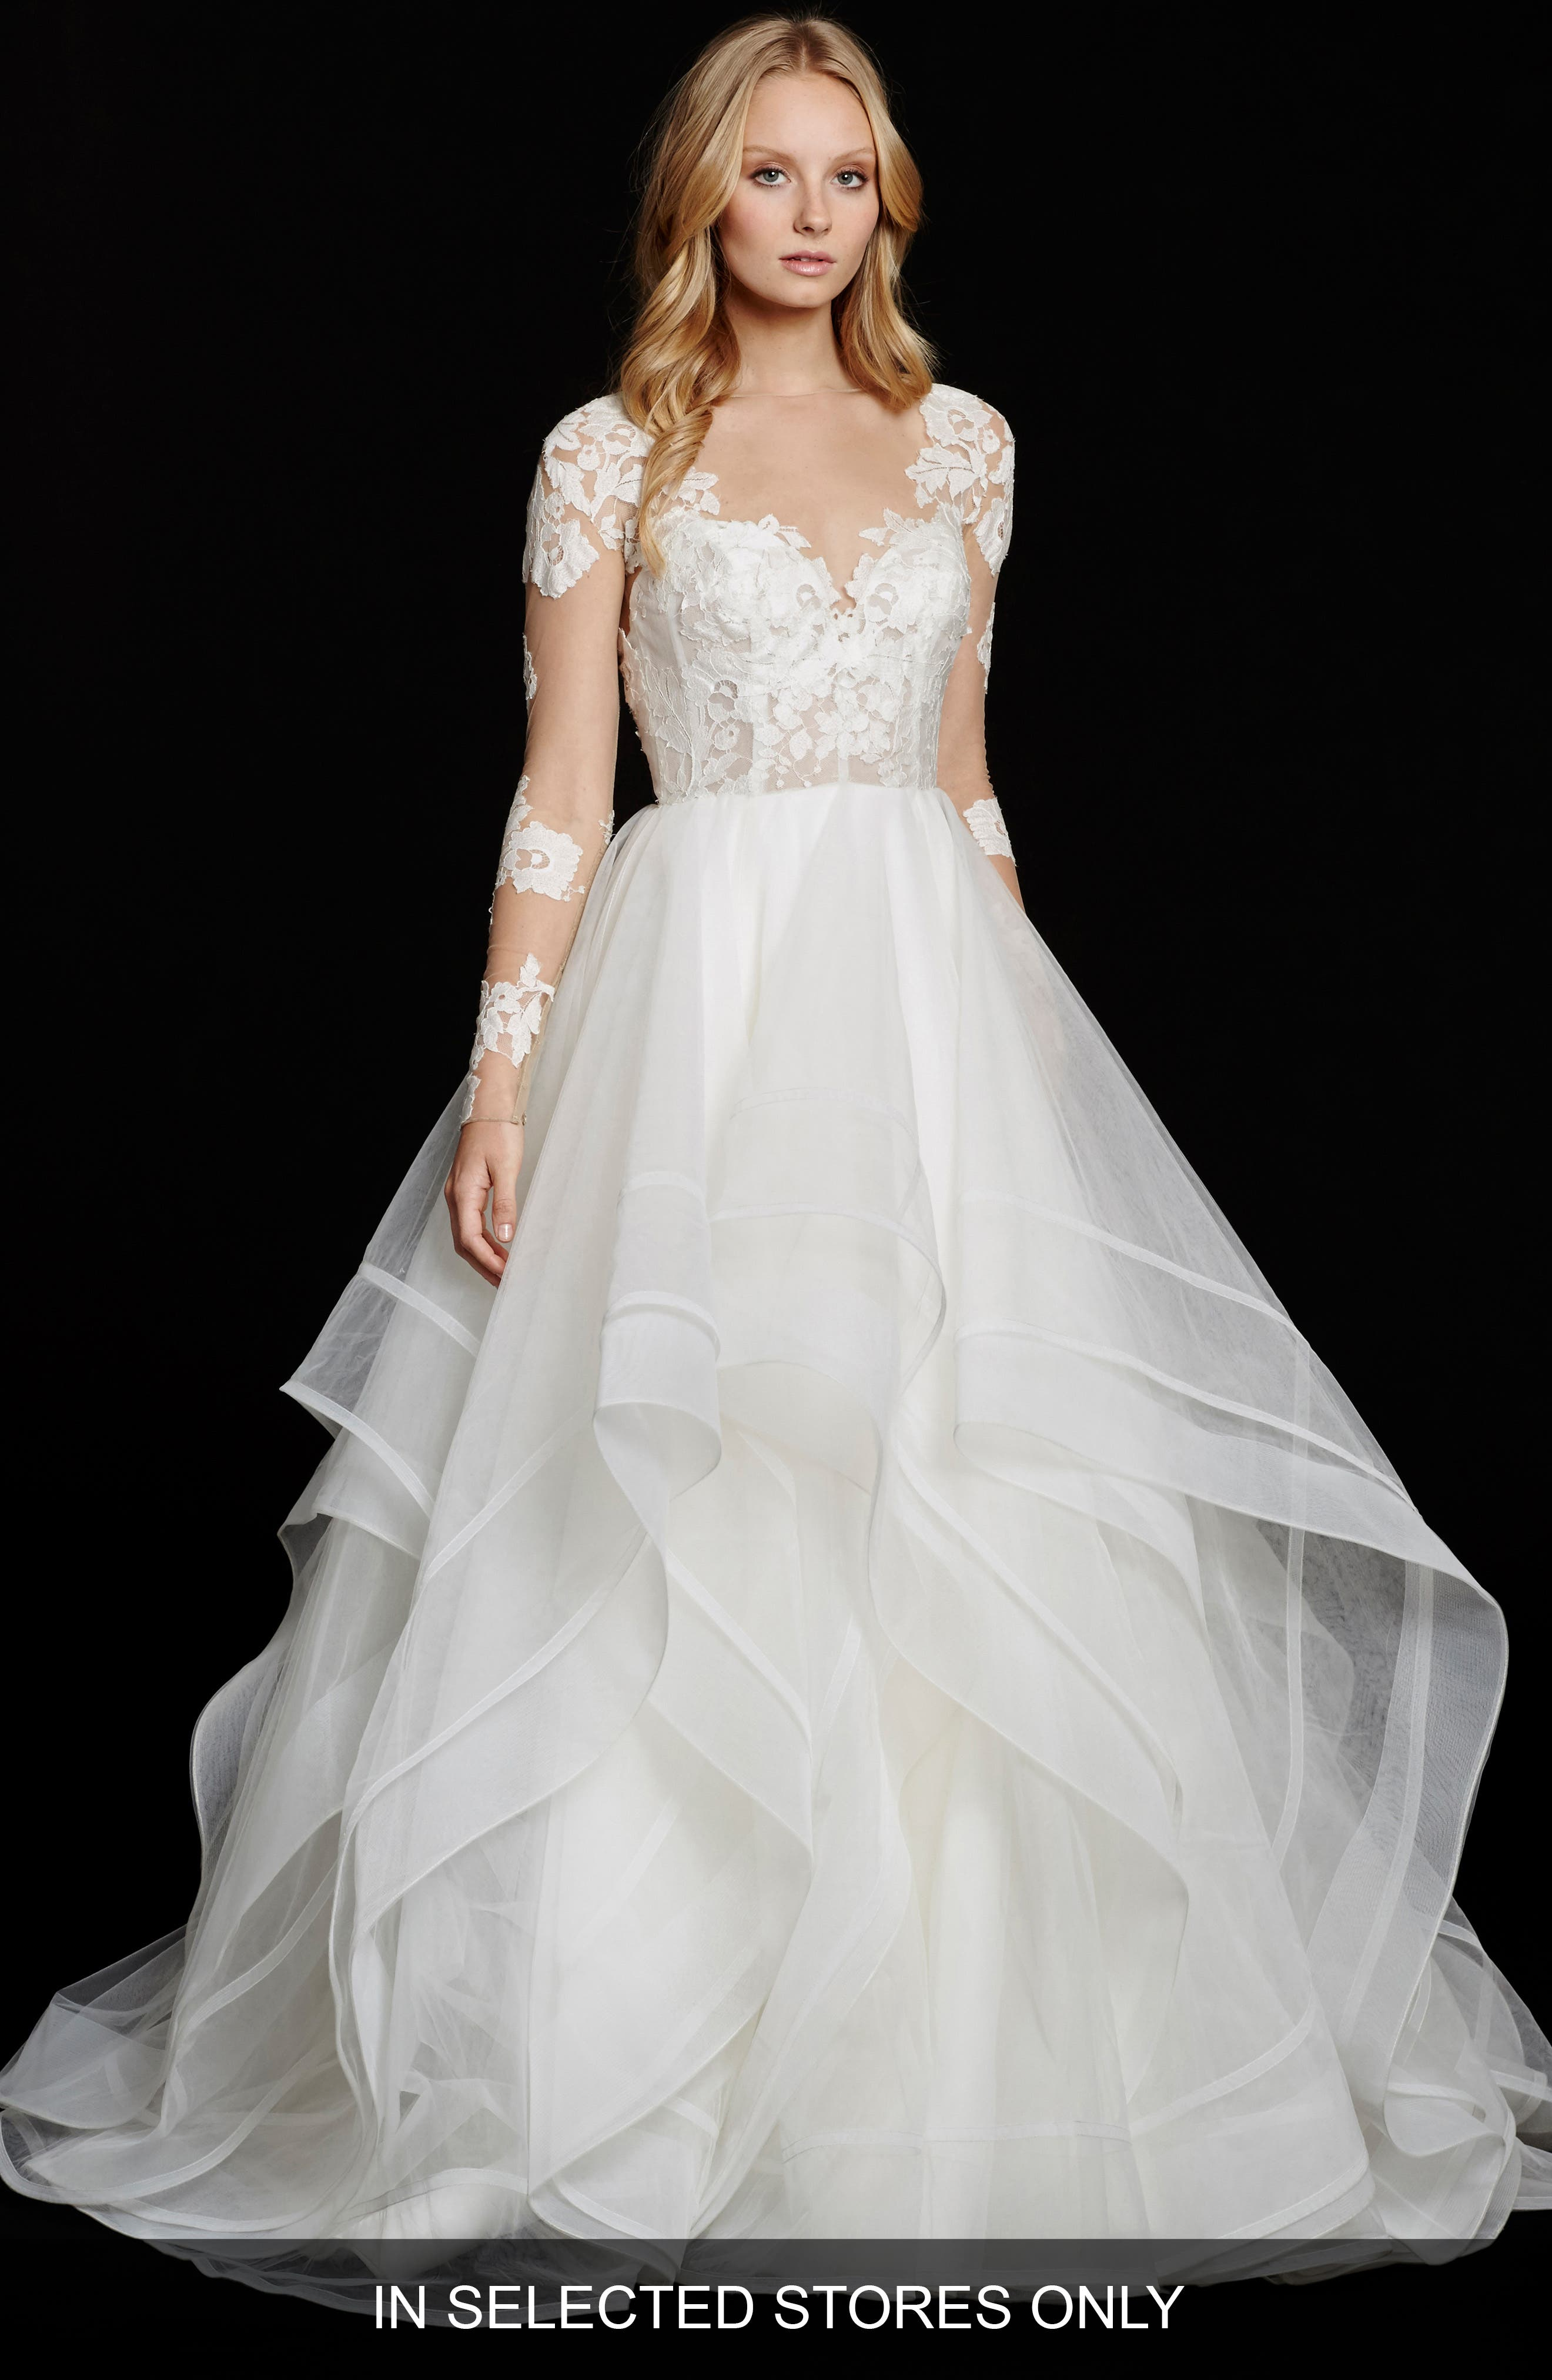 Main Image - Hayley Paige 'Elysia' Long Sleeve Lace & Tulle Ballgown (In Stores Only)